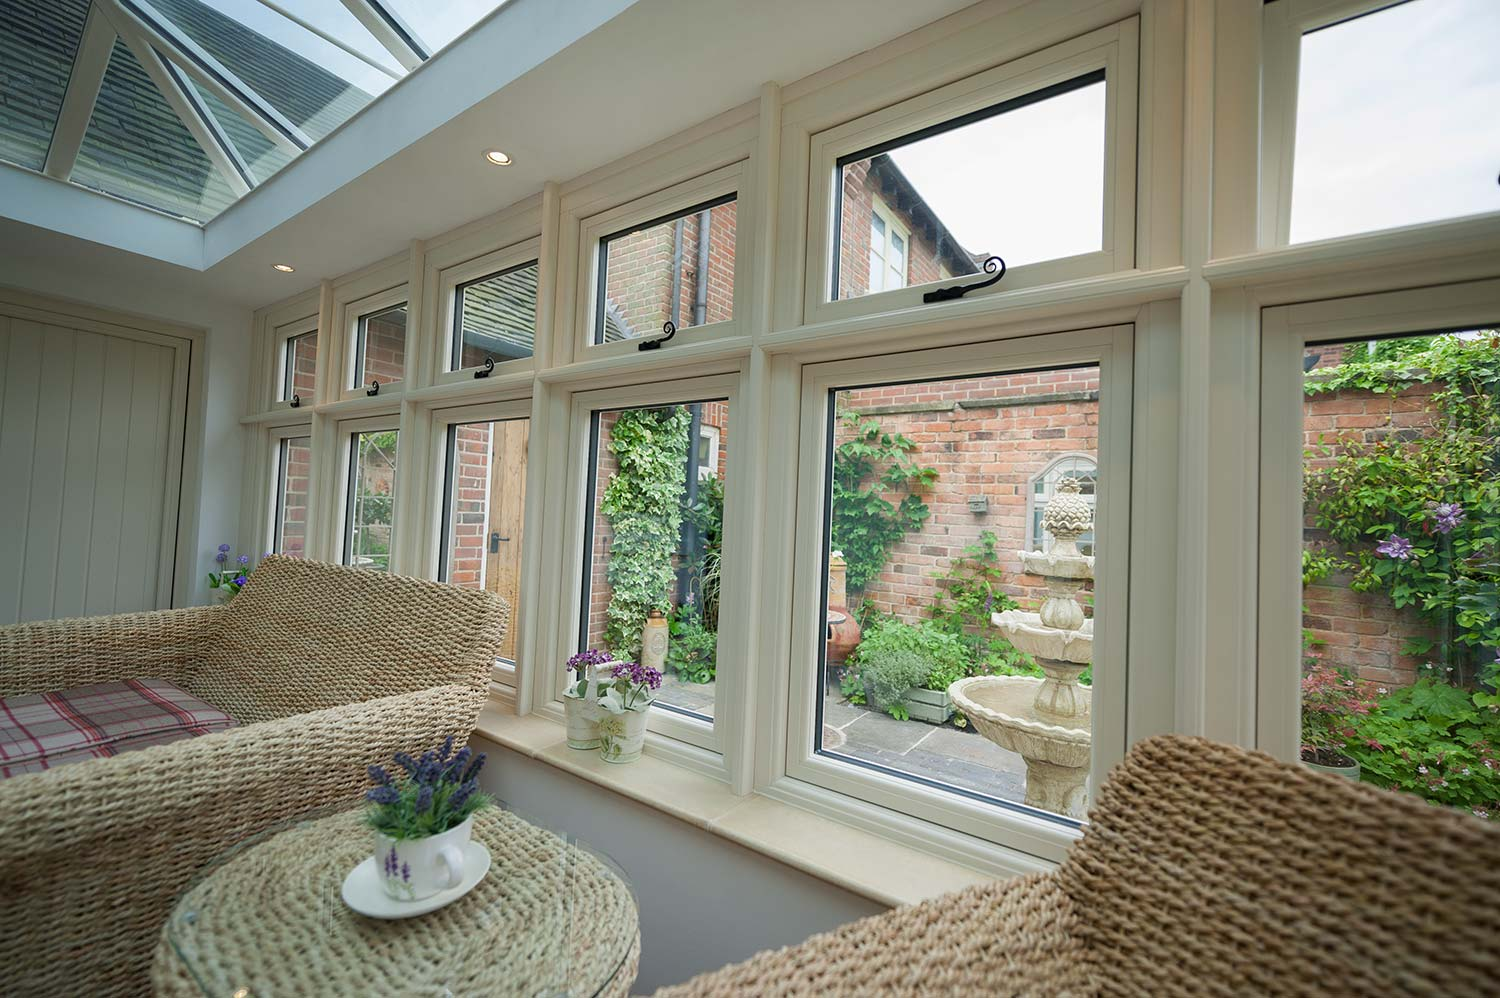 Residence Windows Surrey